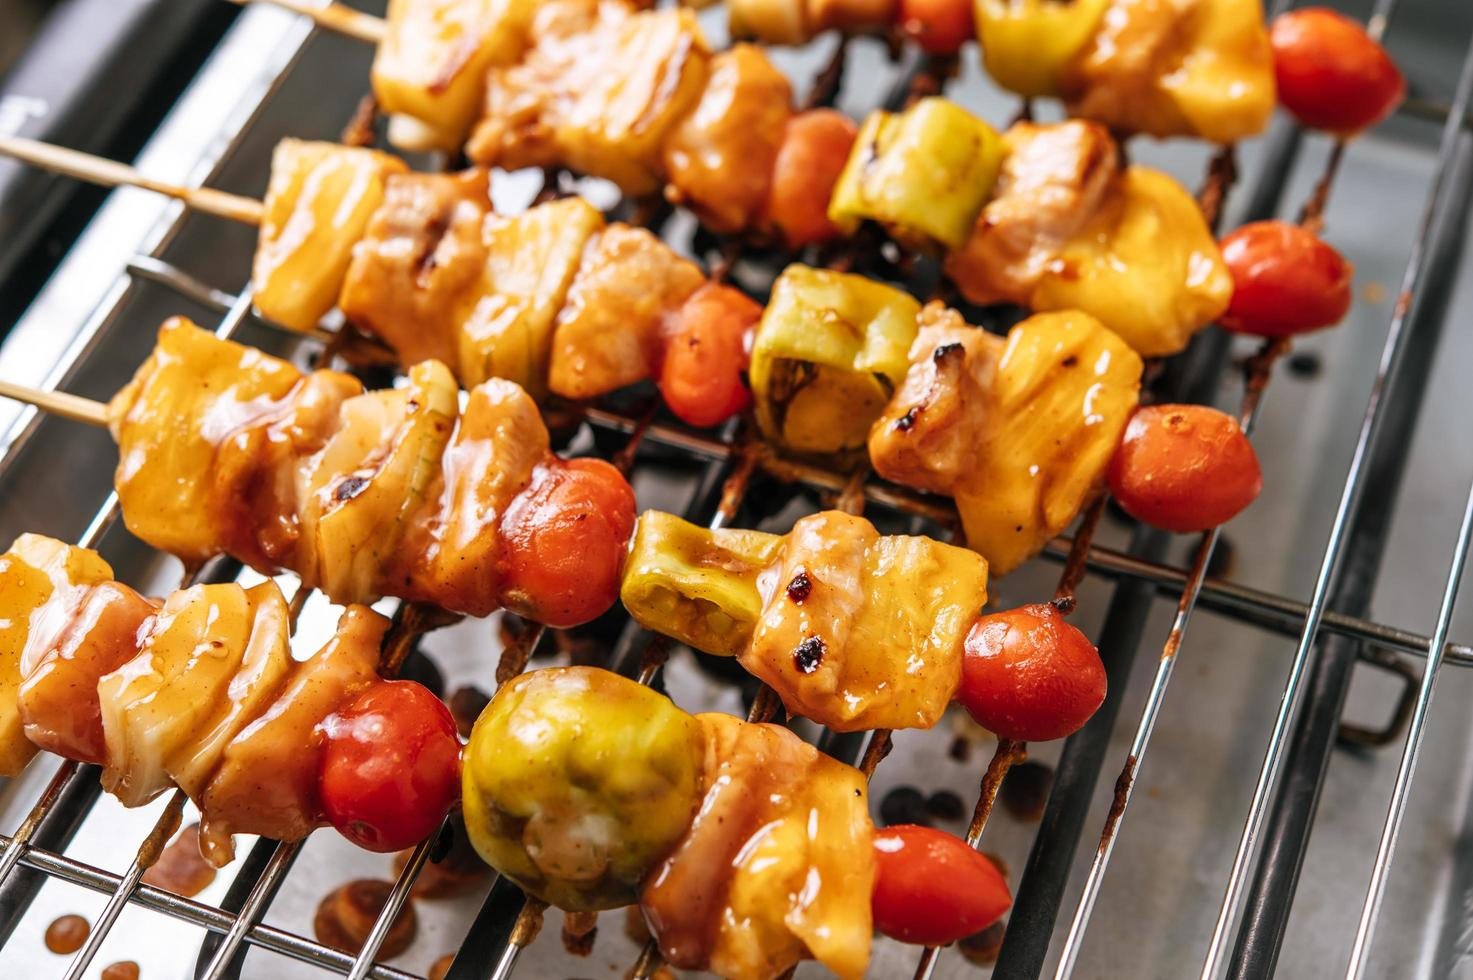 BBQ grill with a variety of meats, tomato and peppers photo